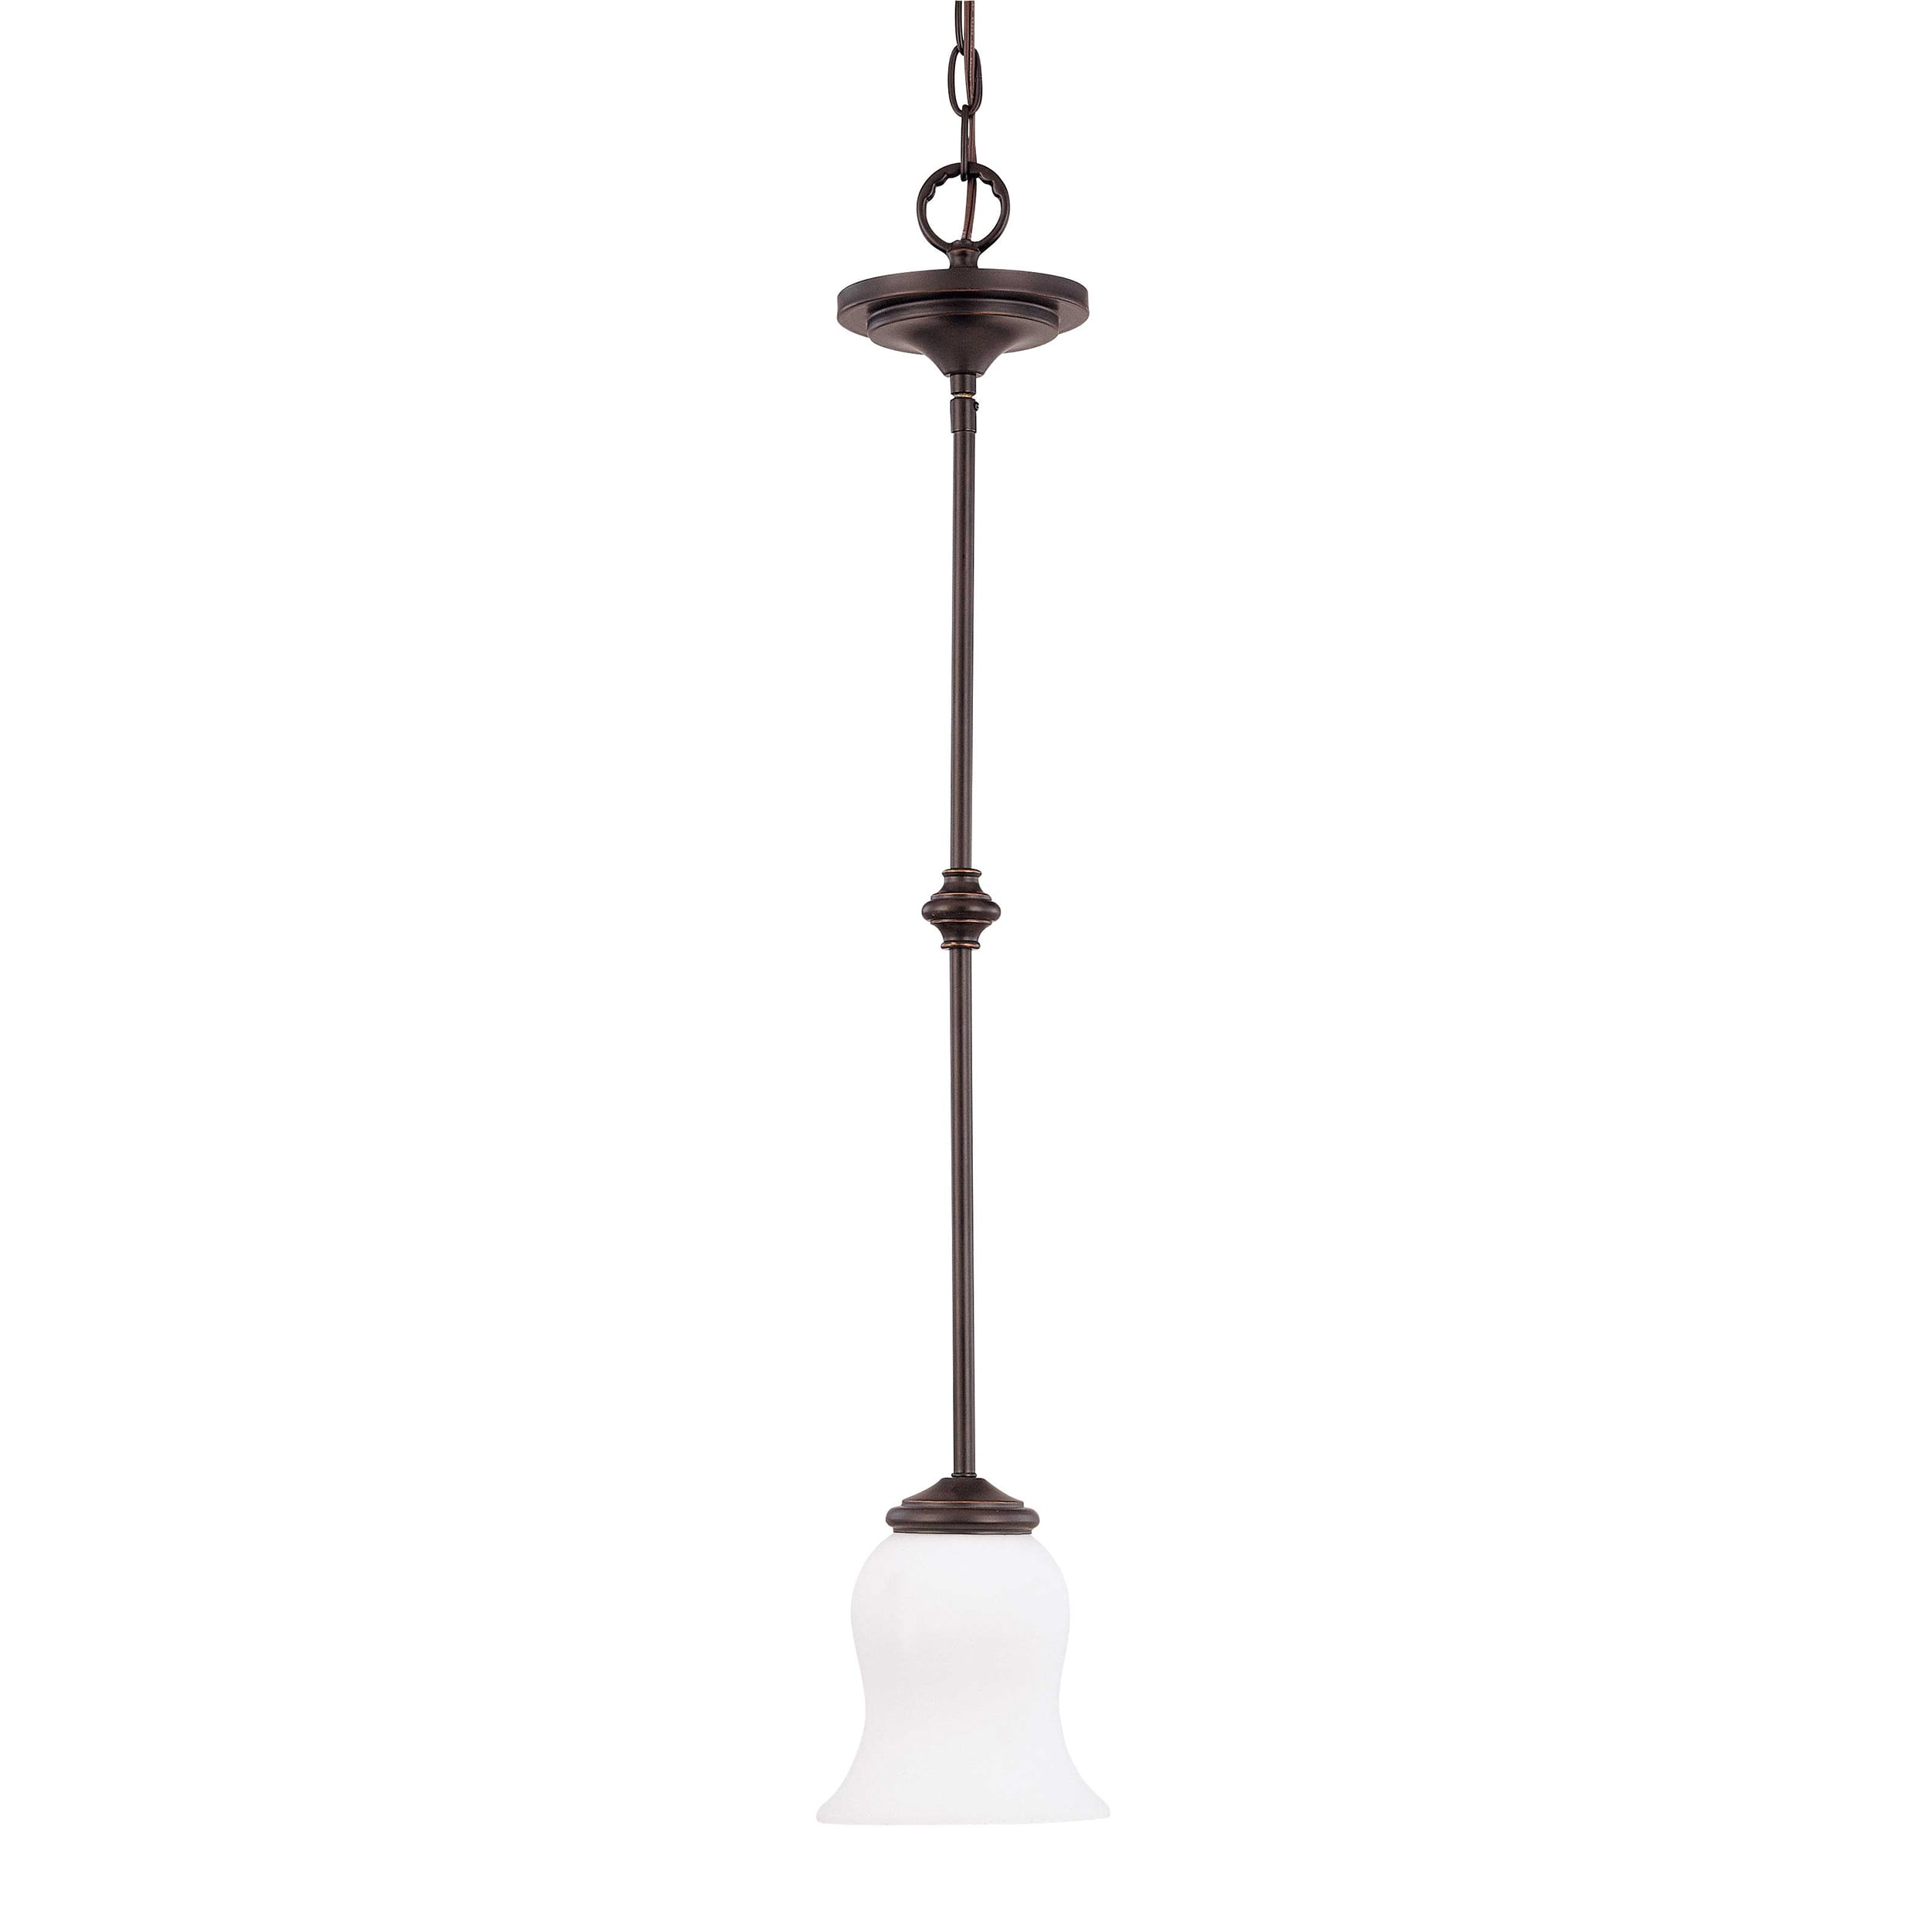 Glenwood 1 Light Sudbury Bronze With Satin White Glass Mini Pendant